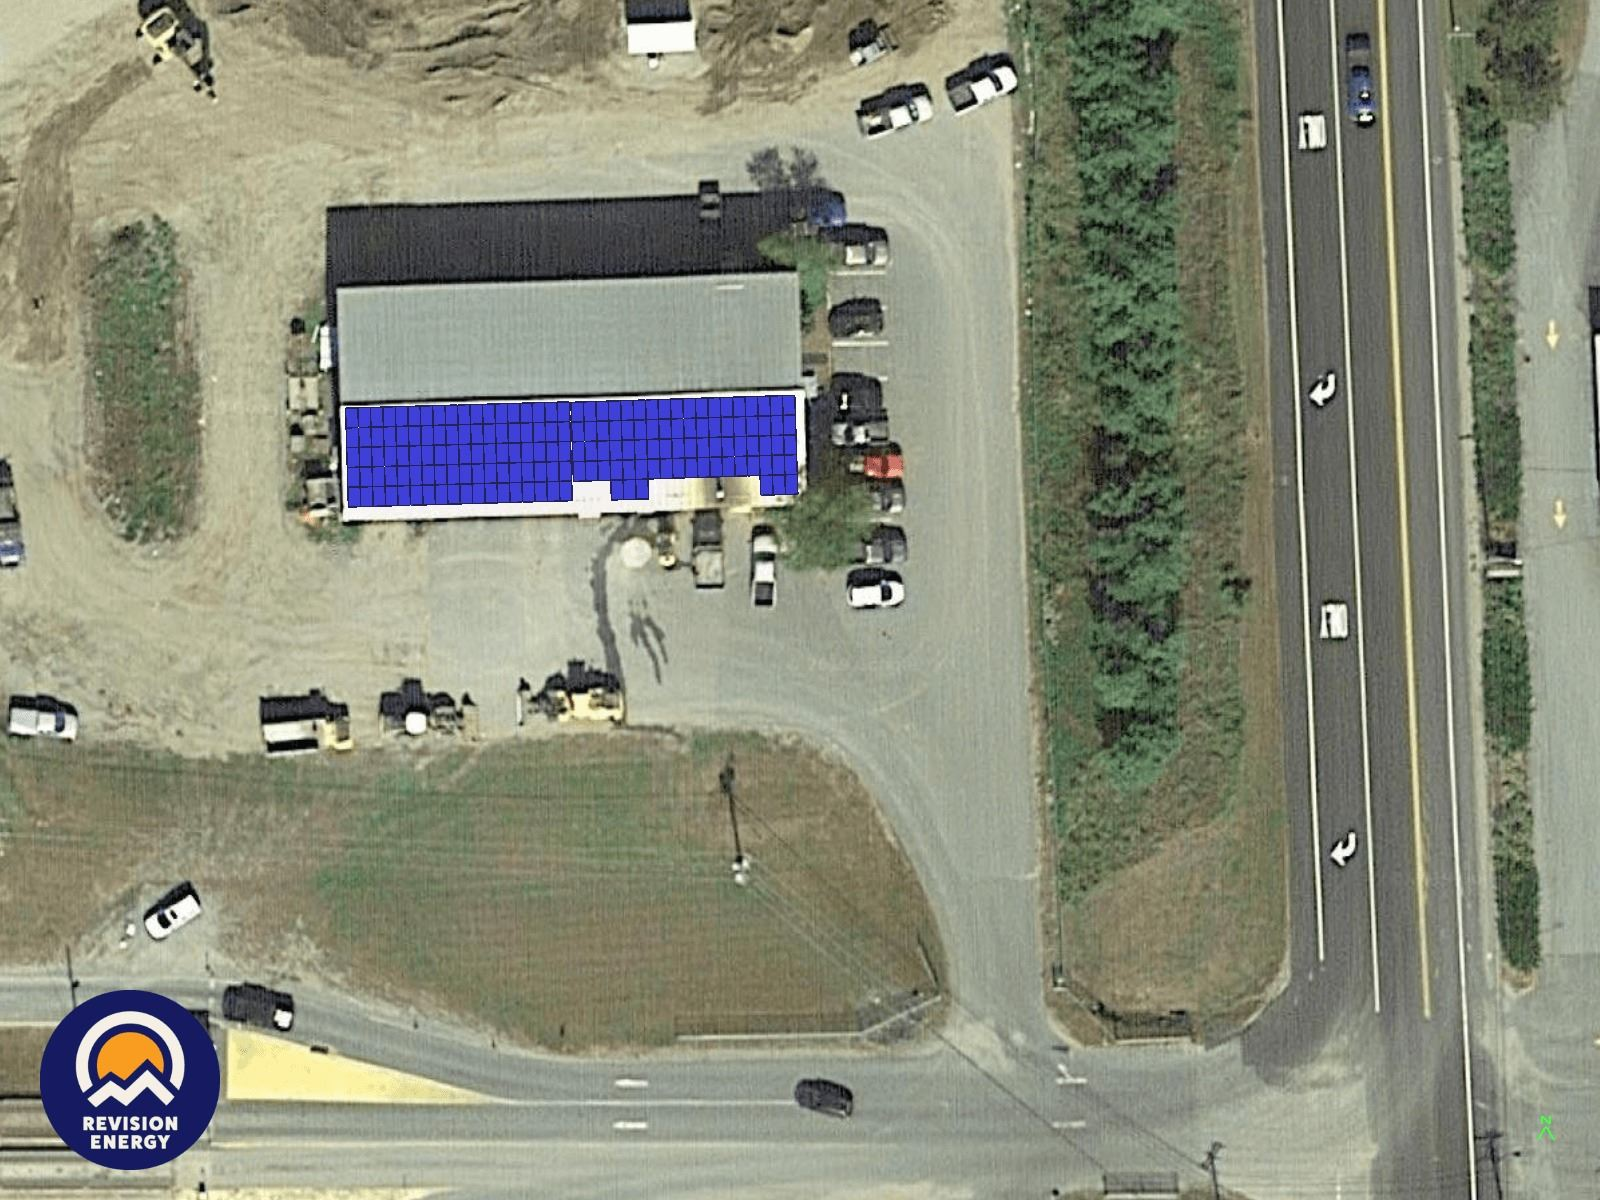 Landfill Maintenance Building roof with solar array depiction Opens in new window